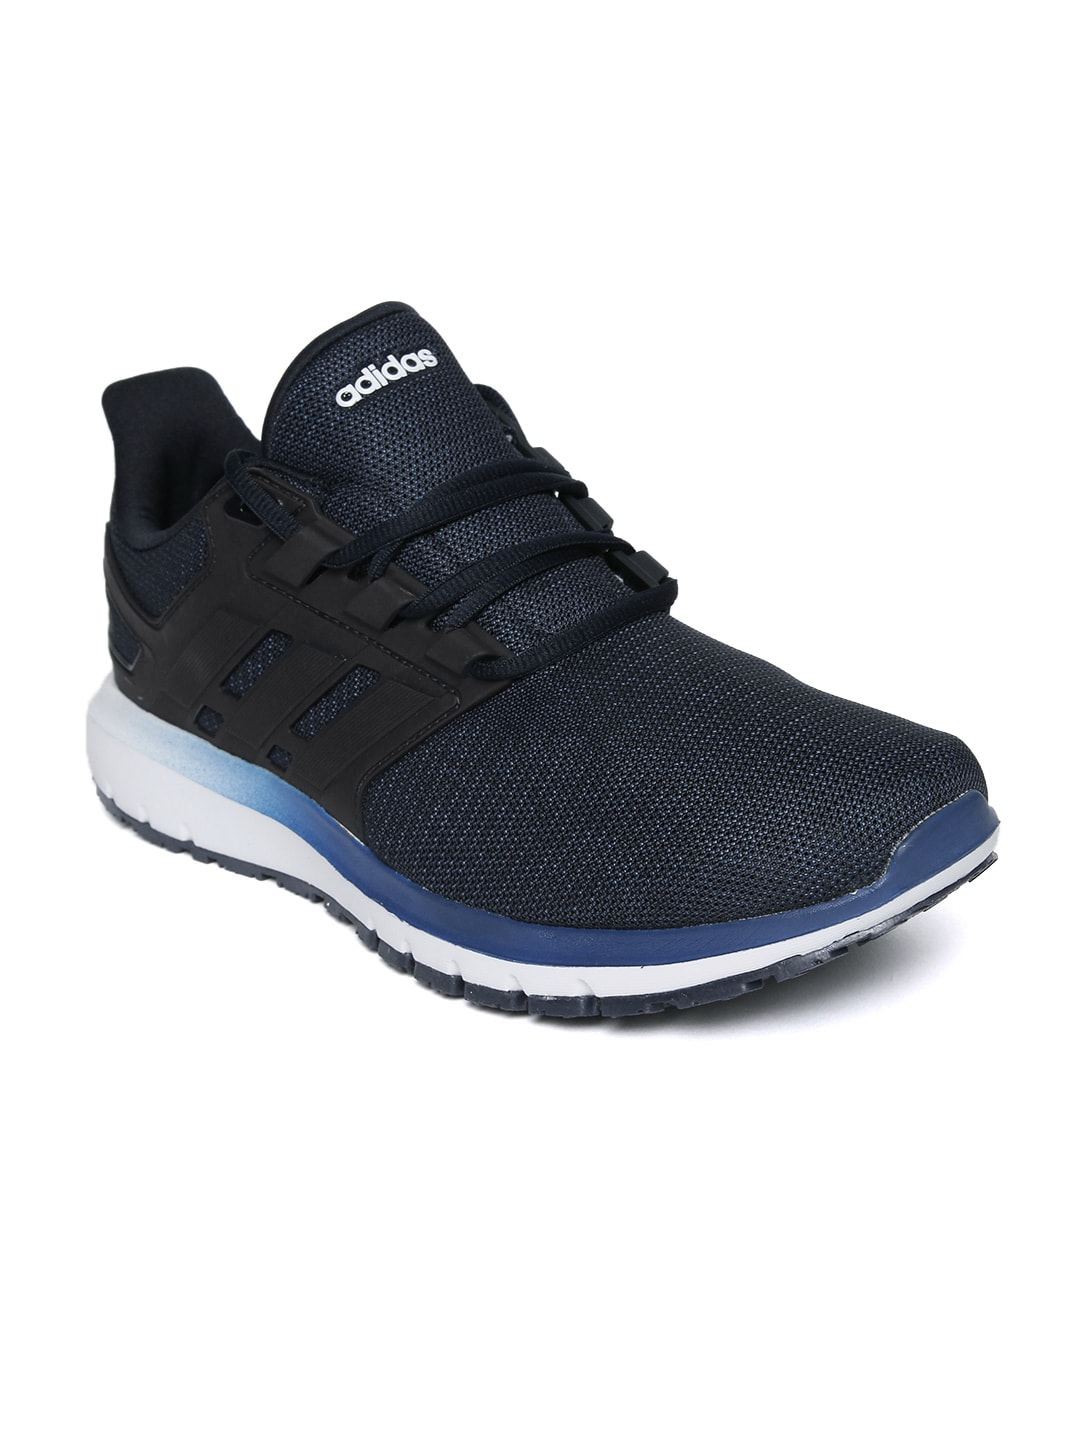 buy popular 6c90c f591b Adidas Shoes - Buy Adidas Shoes for Men   Women Online - Myntra